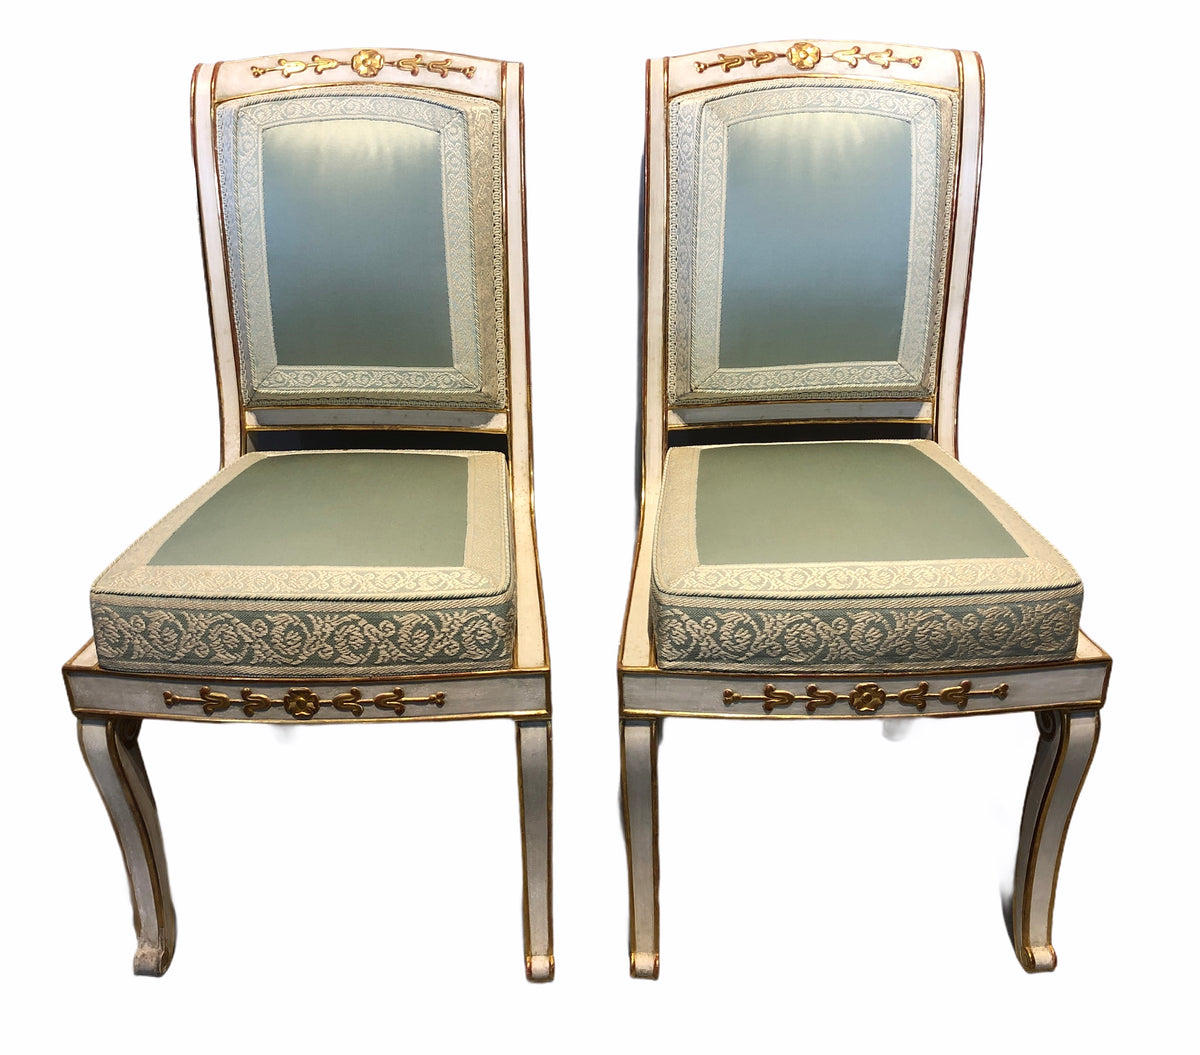 Baltic Parcel Gilt and Painted Chairs